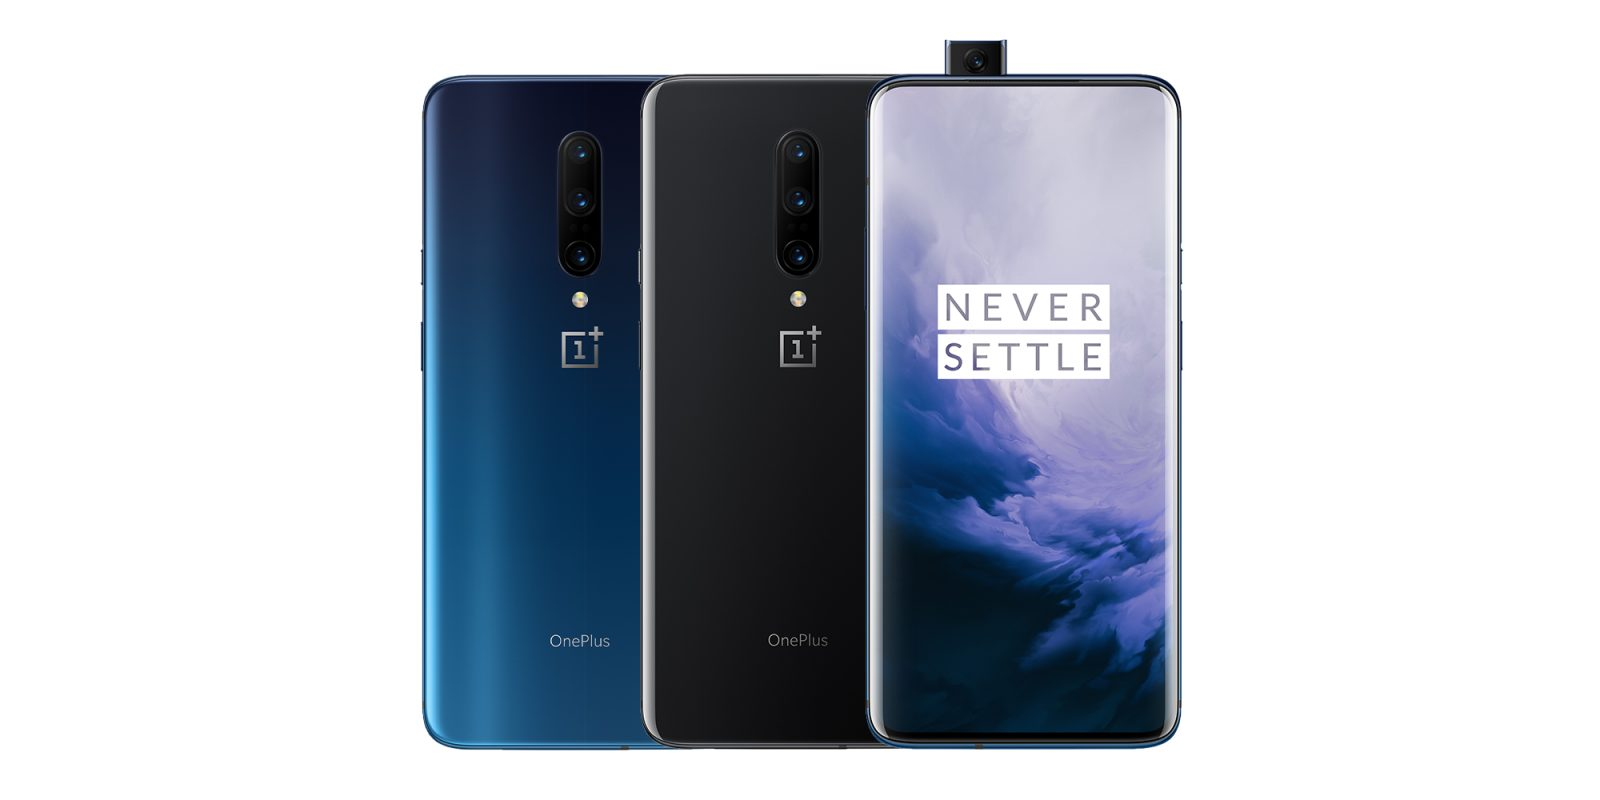 OnePlus 7 OnePlus 7 Pro review twitter